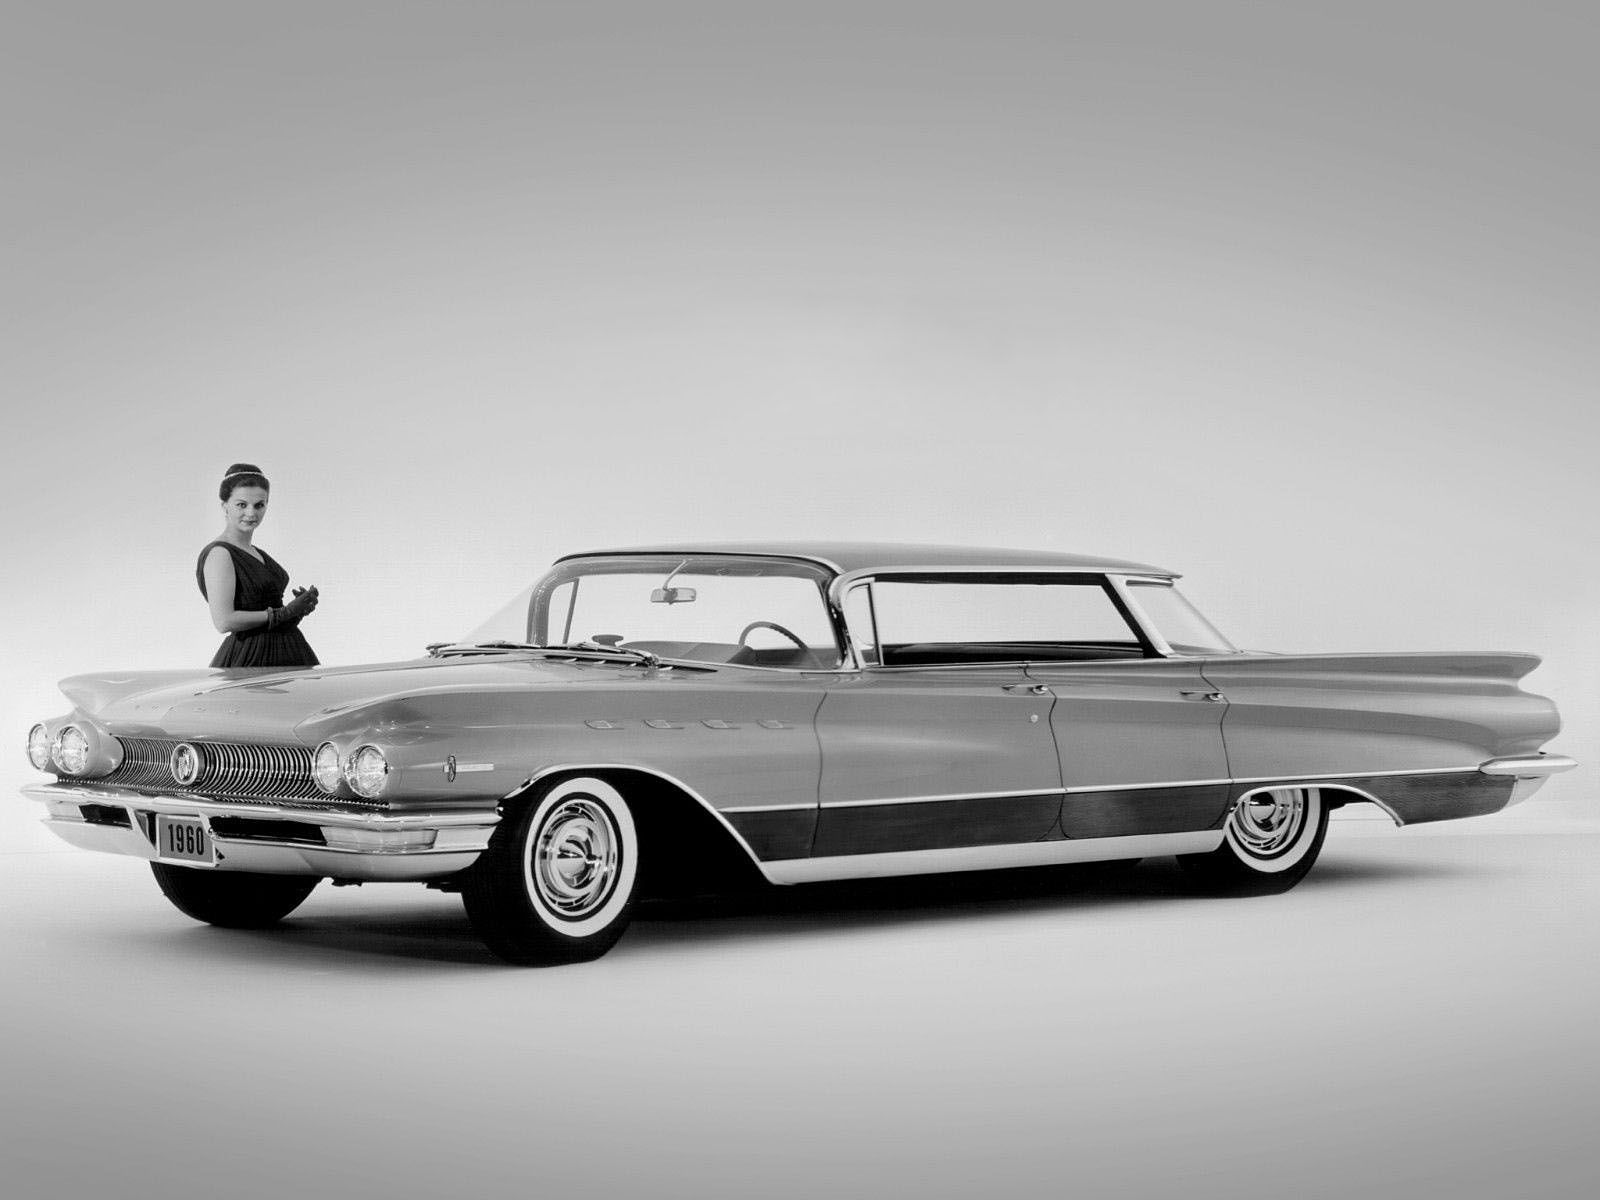 Amazing 1960 Buick Electra Pictures & Backgrounds